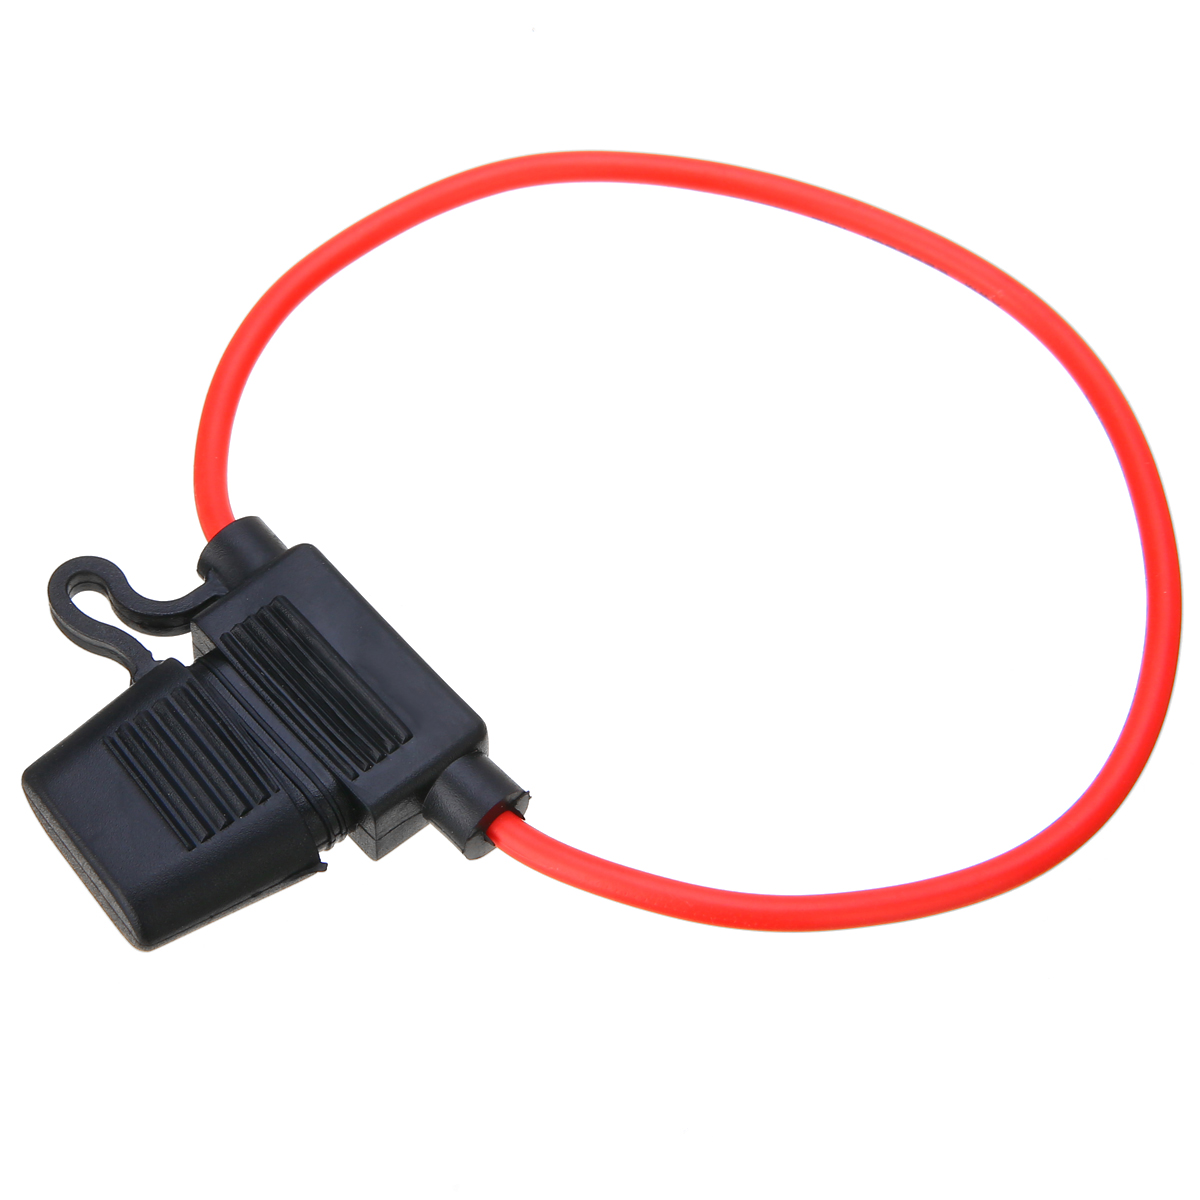 1PC Waterproof 14AWG Copper WireIn-line Car Automotive Blade Fuse Holder Fuseholder 20A High Quality